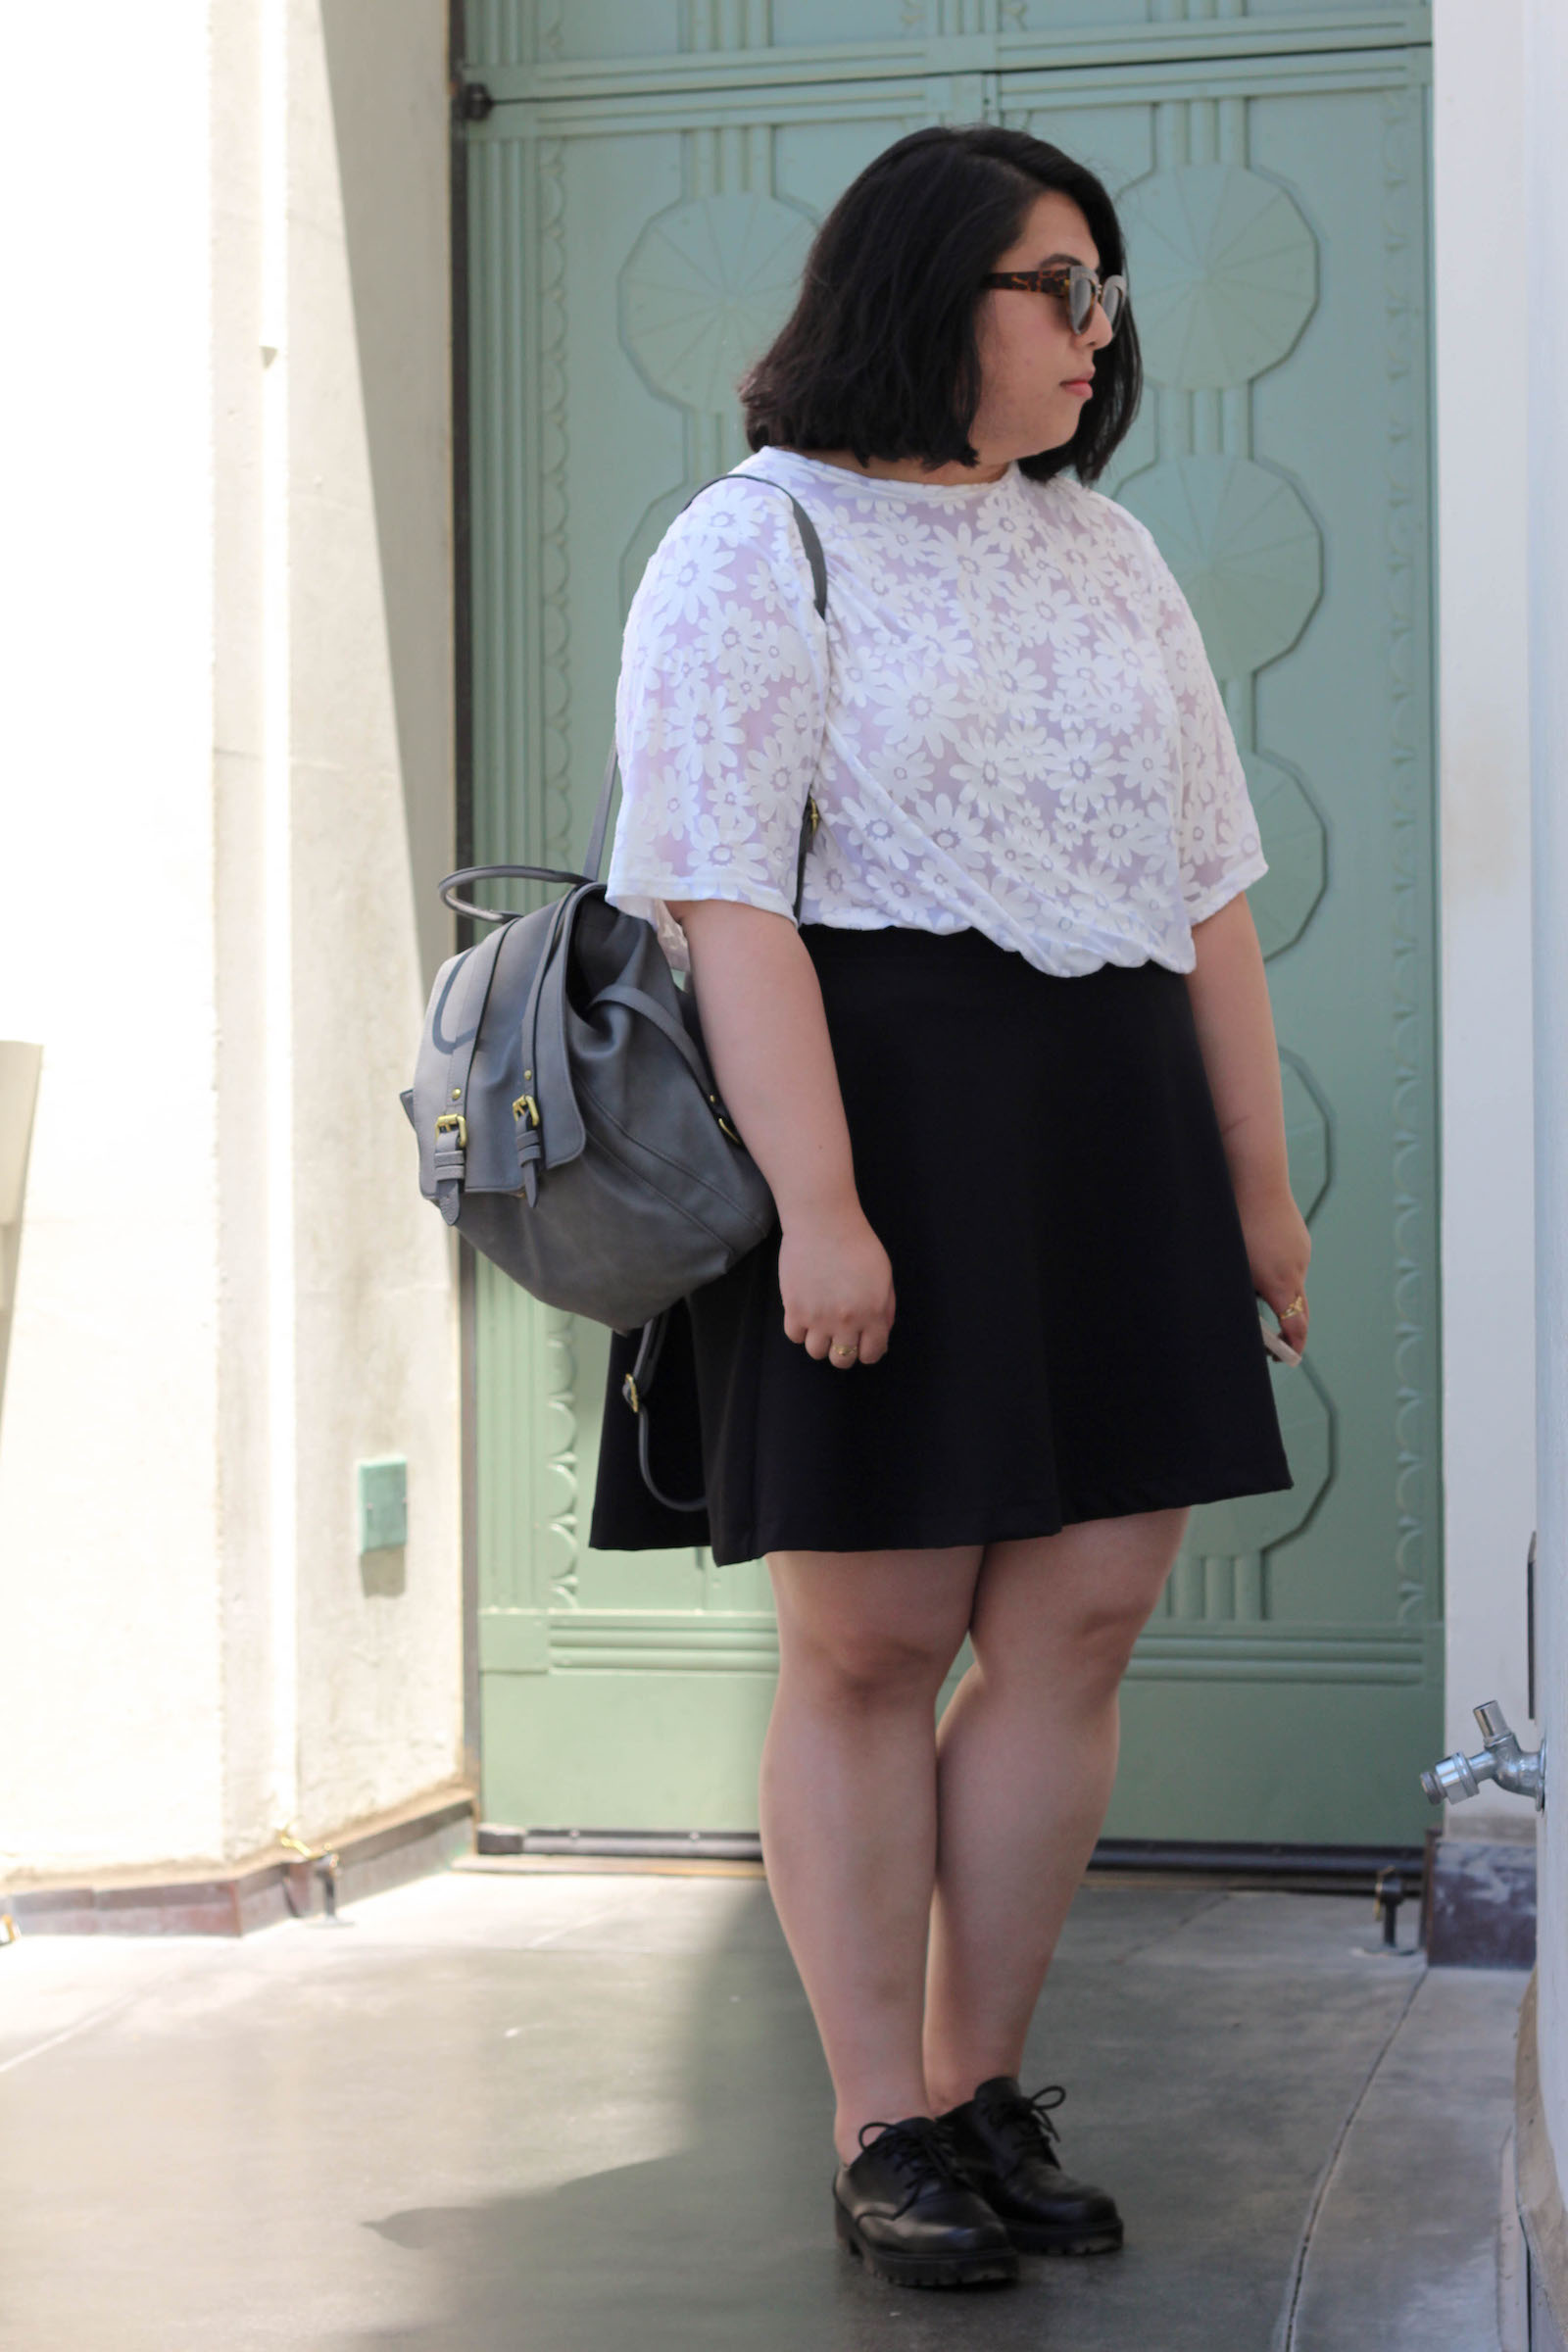 topshop-daisy-top-target-minimal-backpack-old-navy-circle-skirt-hm-lace-up-loafers